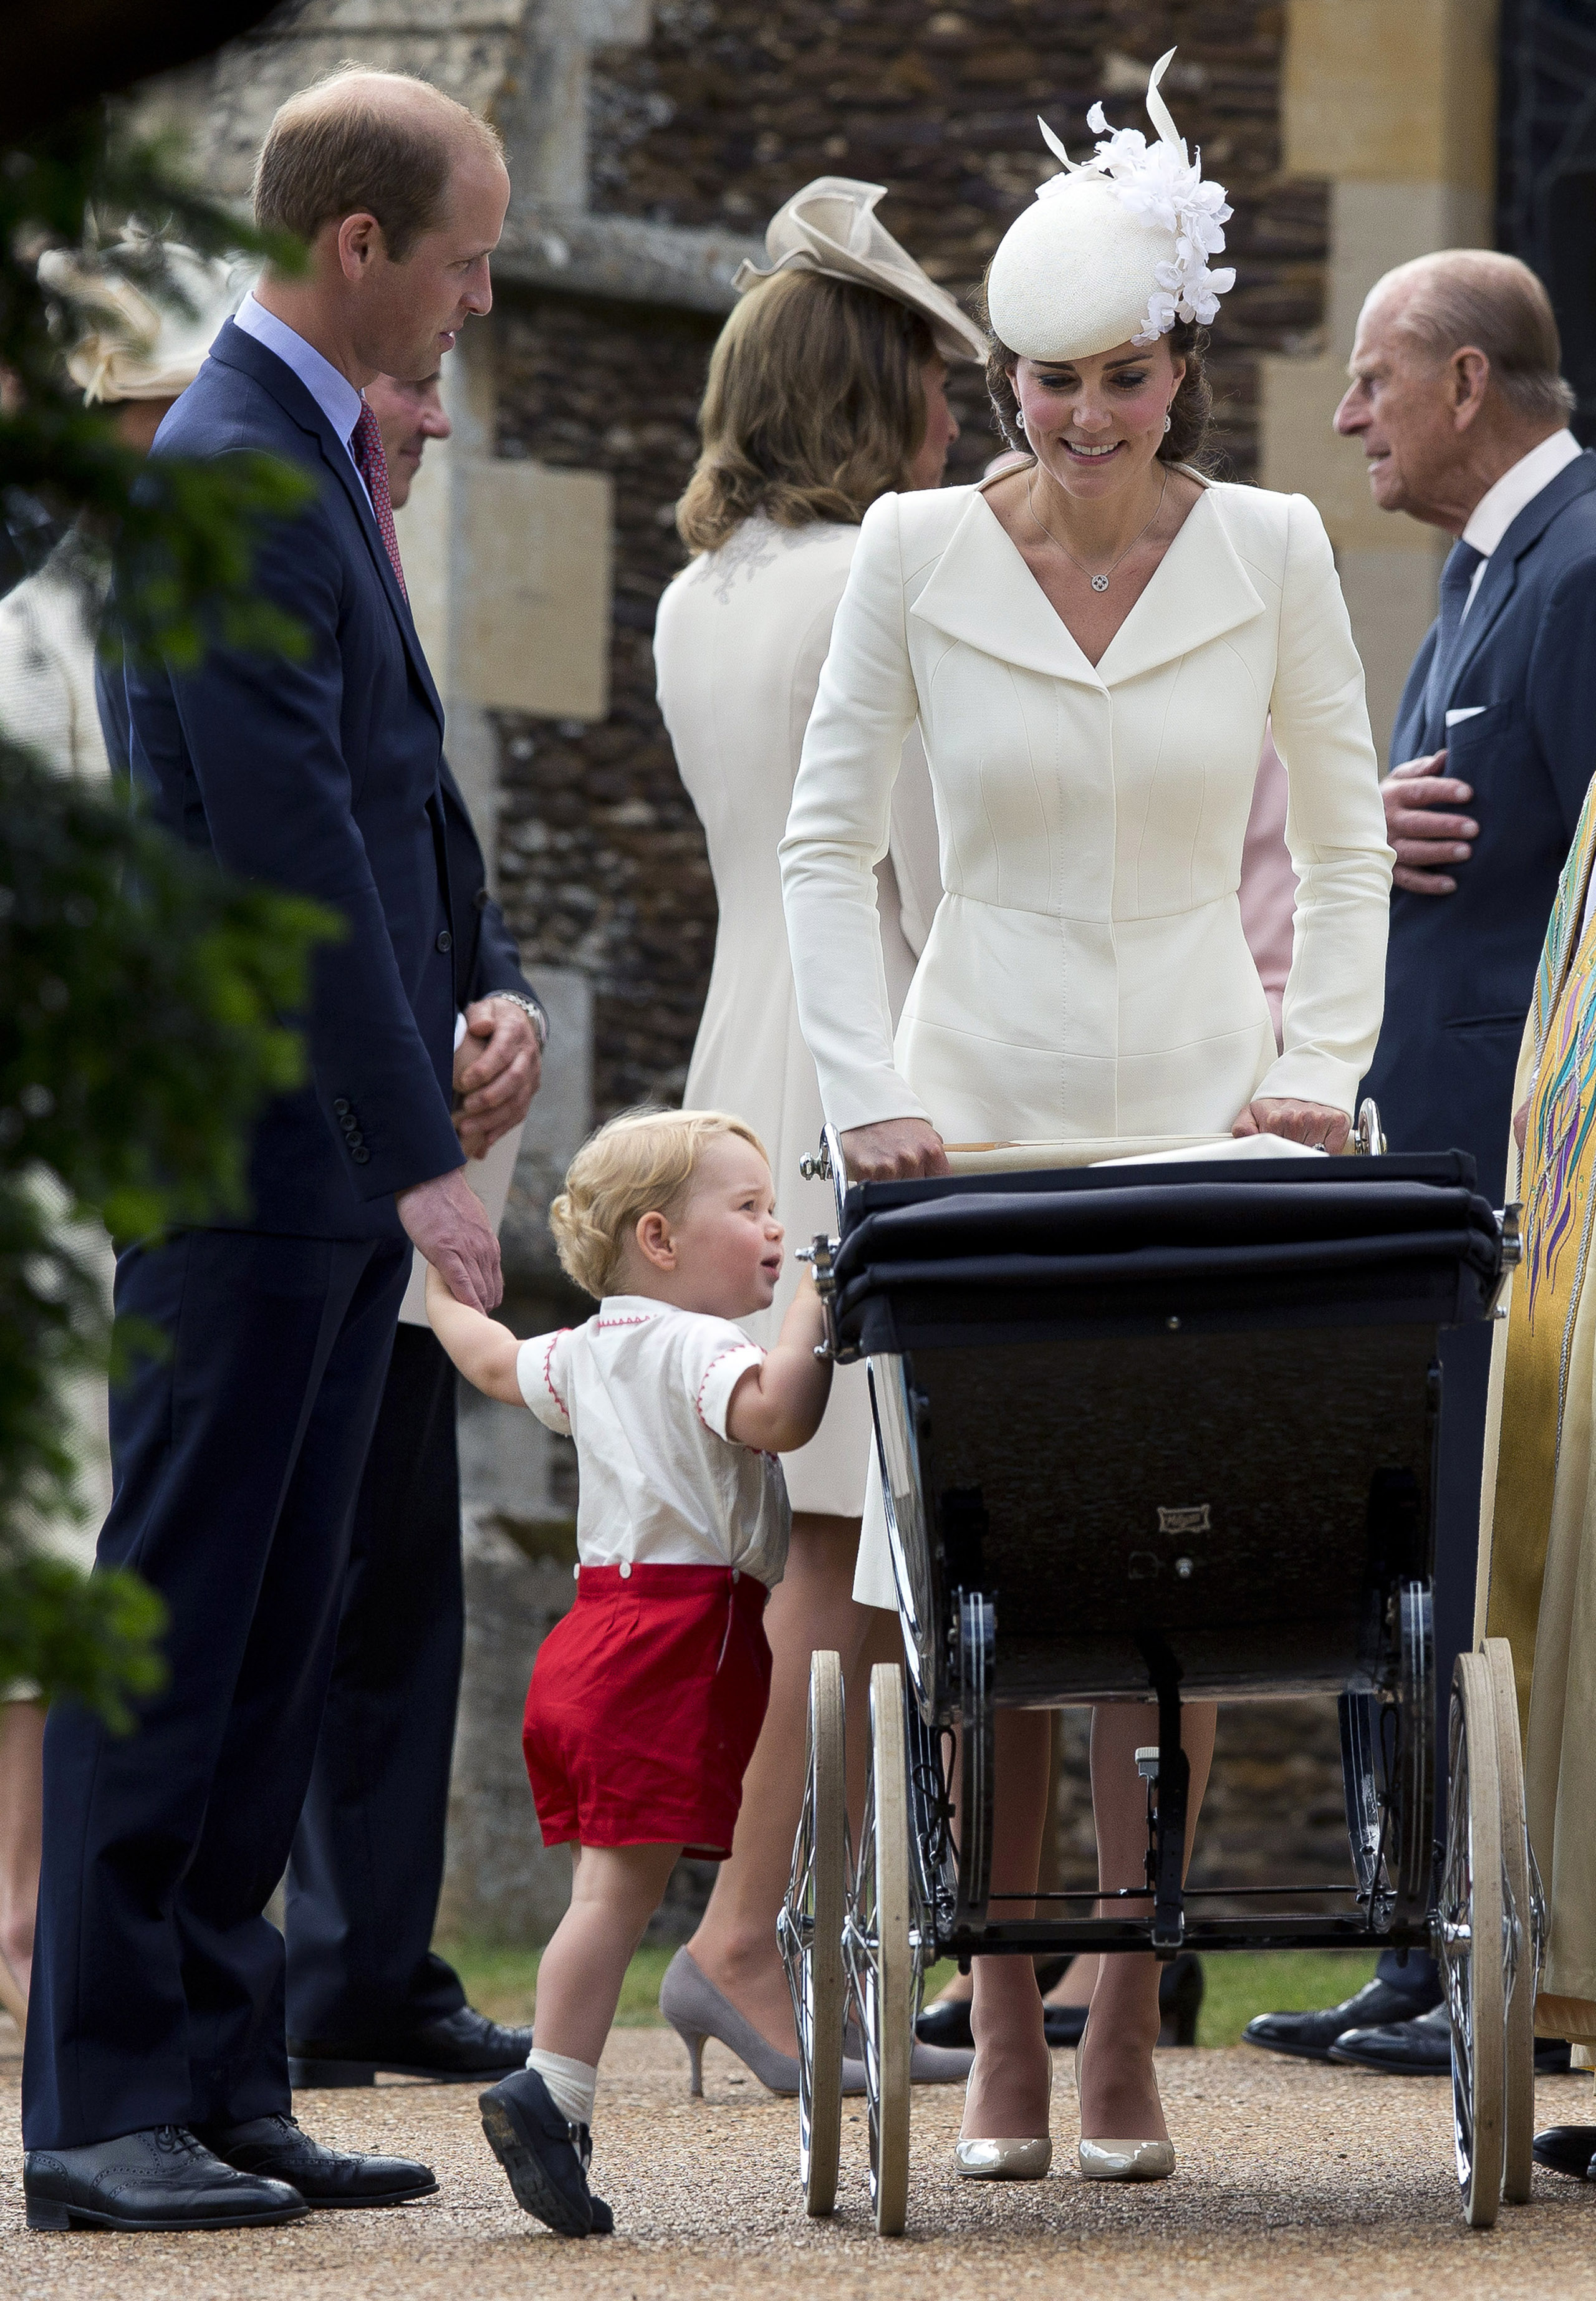 Catherine, Duchess of Cambridge, Prince William, Duke of Cambridge, Princess Charlotte of Cambridge and Prince George of Cambridge leave the Church of St Mary Magdalene on the Sandringham Estate after the Christening of Princess Charlotte of Cambridge in King's Lynn, England on July 5, 2015.